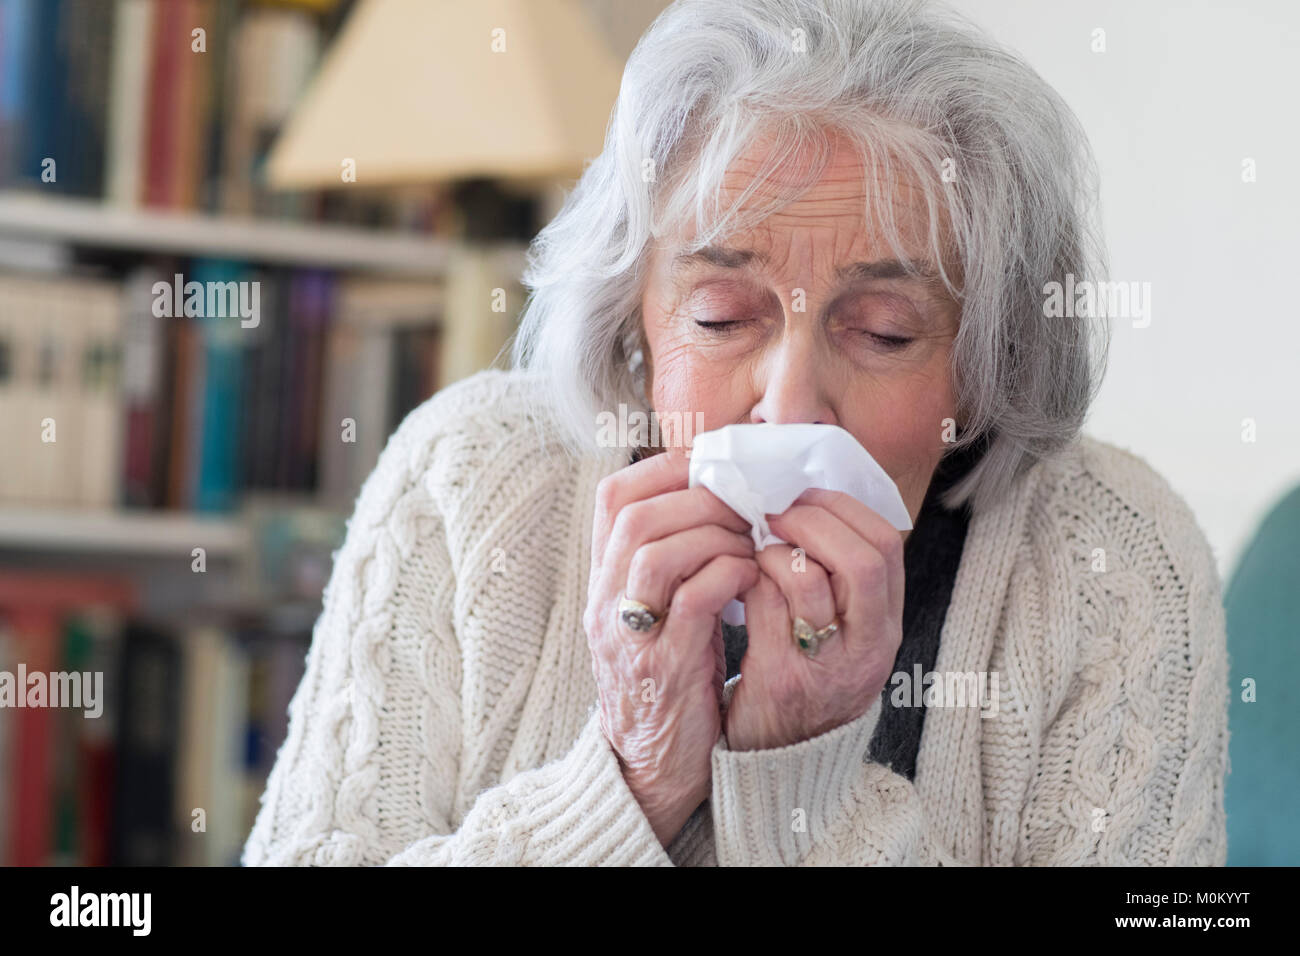 Senior Woman With Flu Blowing Nose At Home - Stock Image